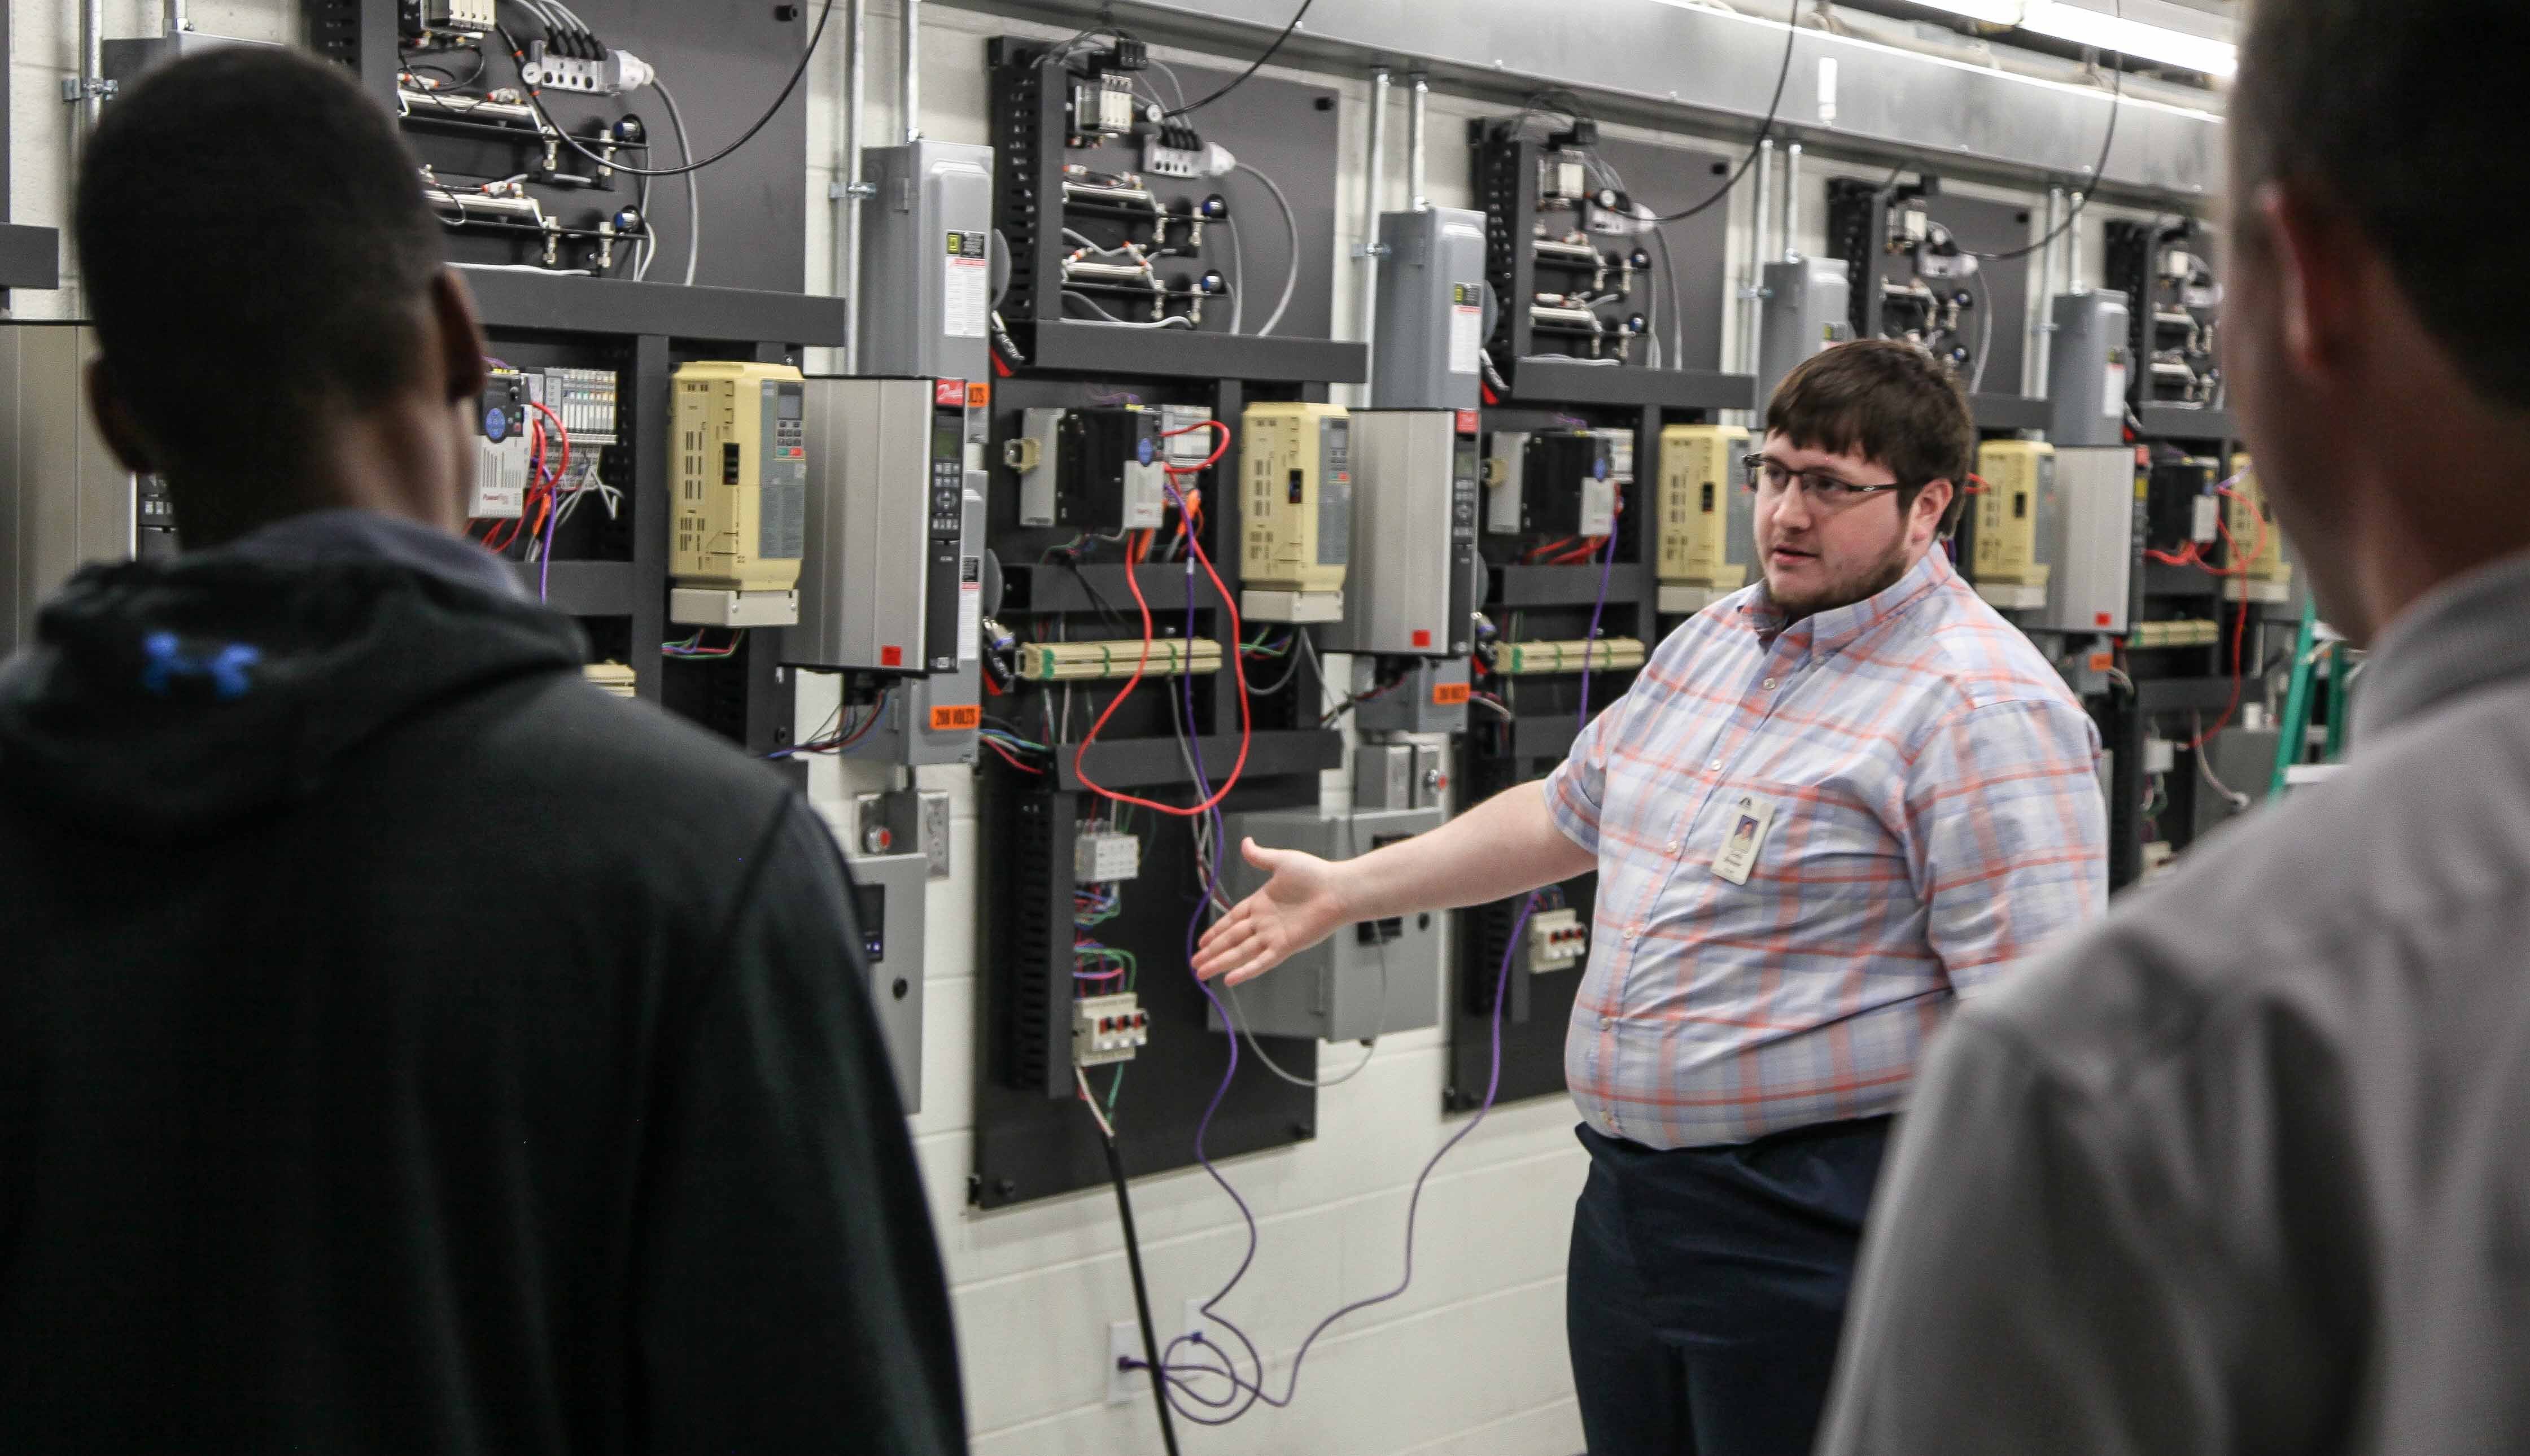 Georgia Northwestern Technical College Electronics Technology Instructor Cody Brewer speaks with students from Ringgold High Schools' Career Exploration program touring GNTC's Catoosa County Campus in Ringgold, Georgia.